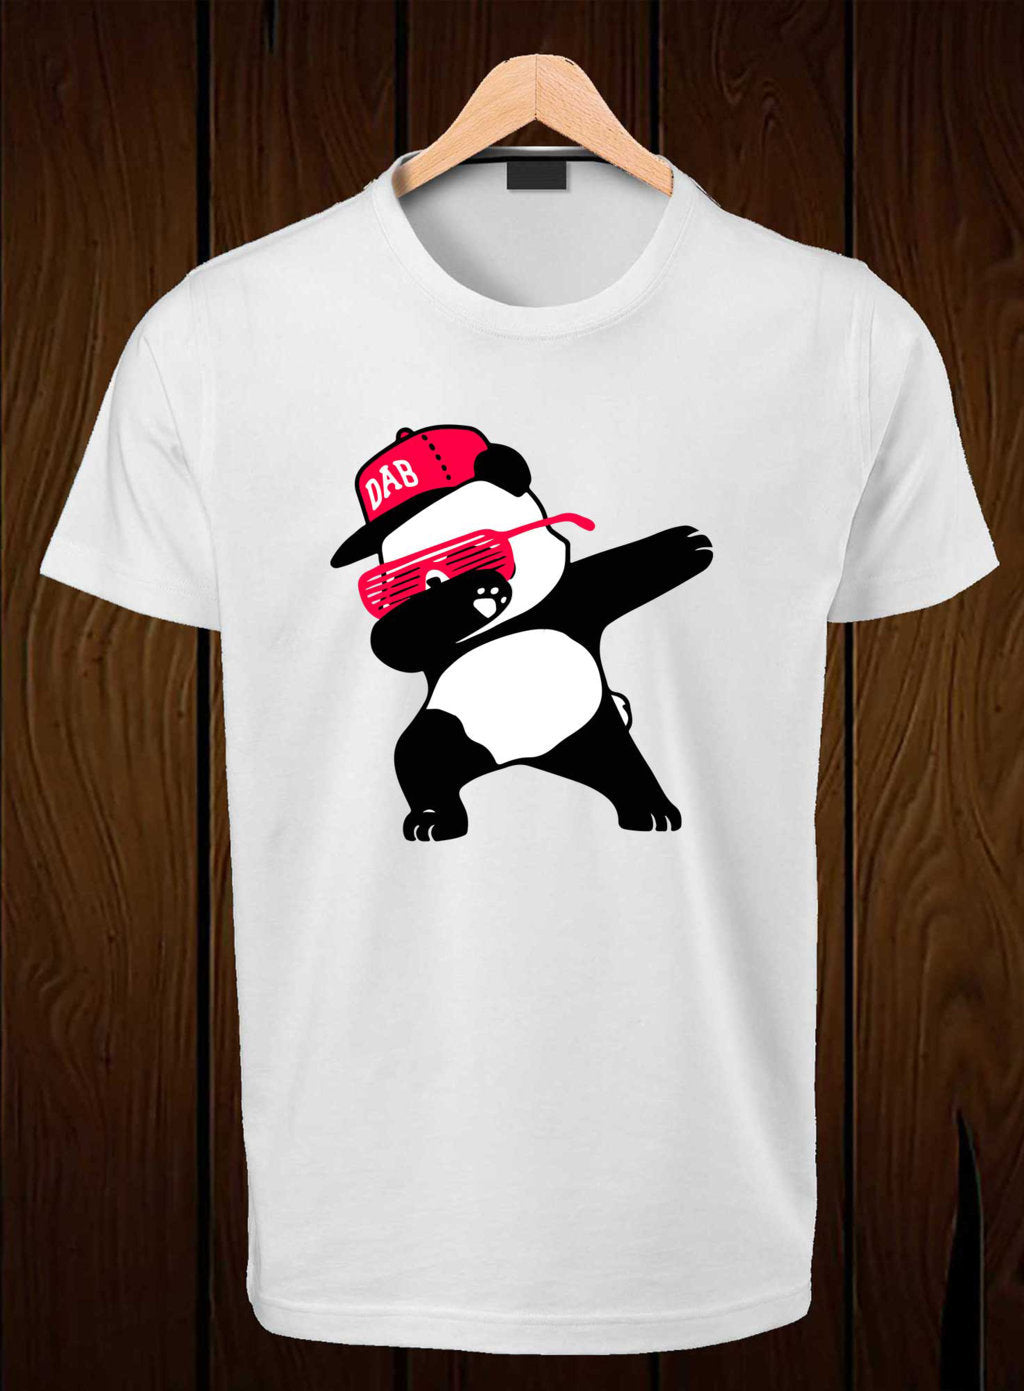 T Shirt Swag Best For Men Design Your Own Logo On Shirts Process Flow Chart Cool Panda Dab Graphic Printed